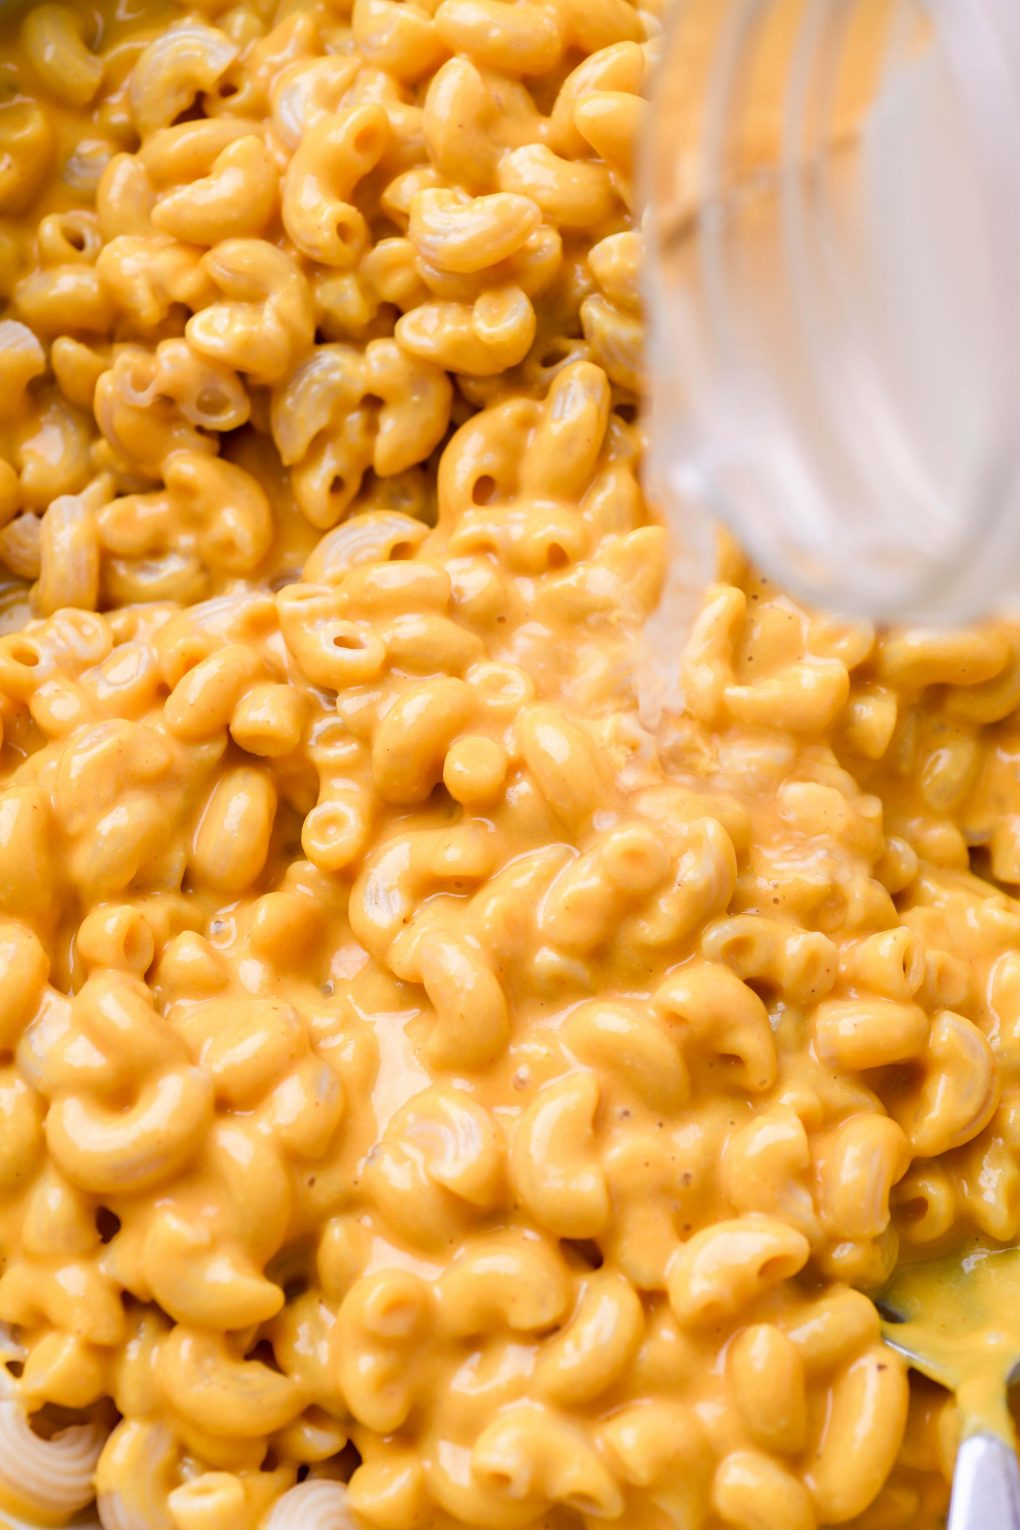 Super close up shot of a glass jar pouring some reserved pasta water into creamy vegan mac and cheese